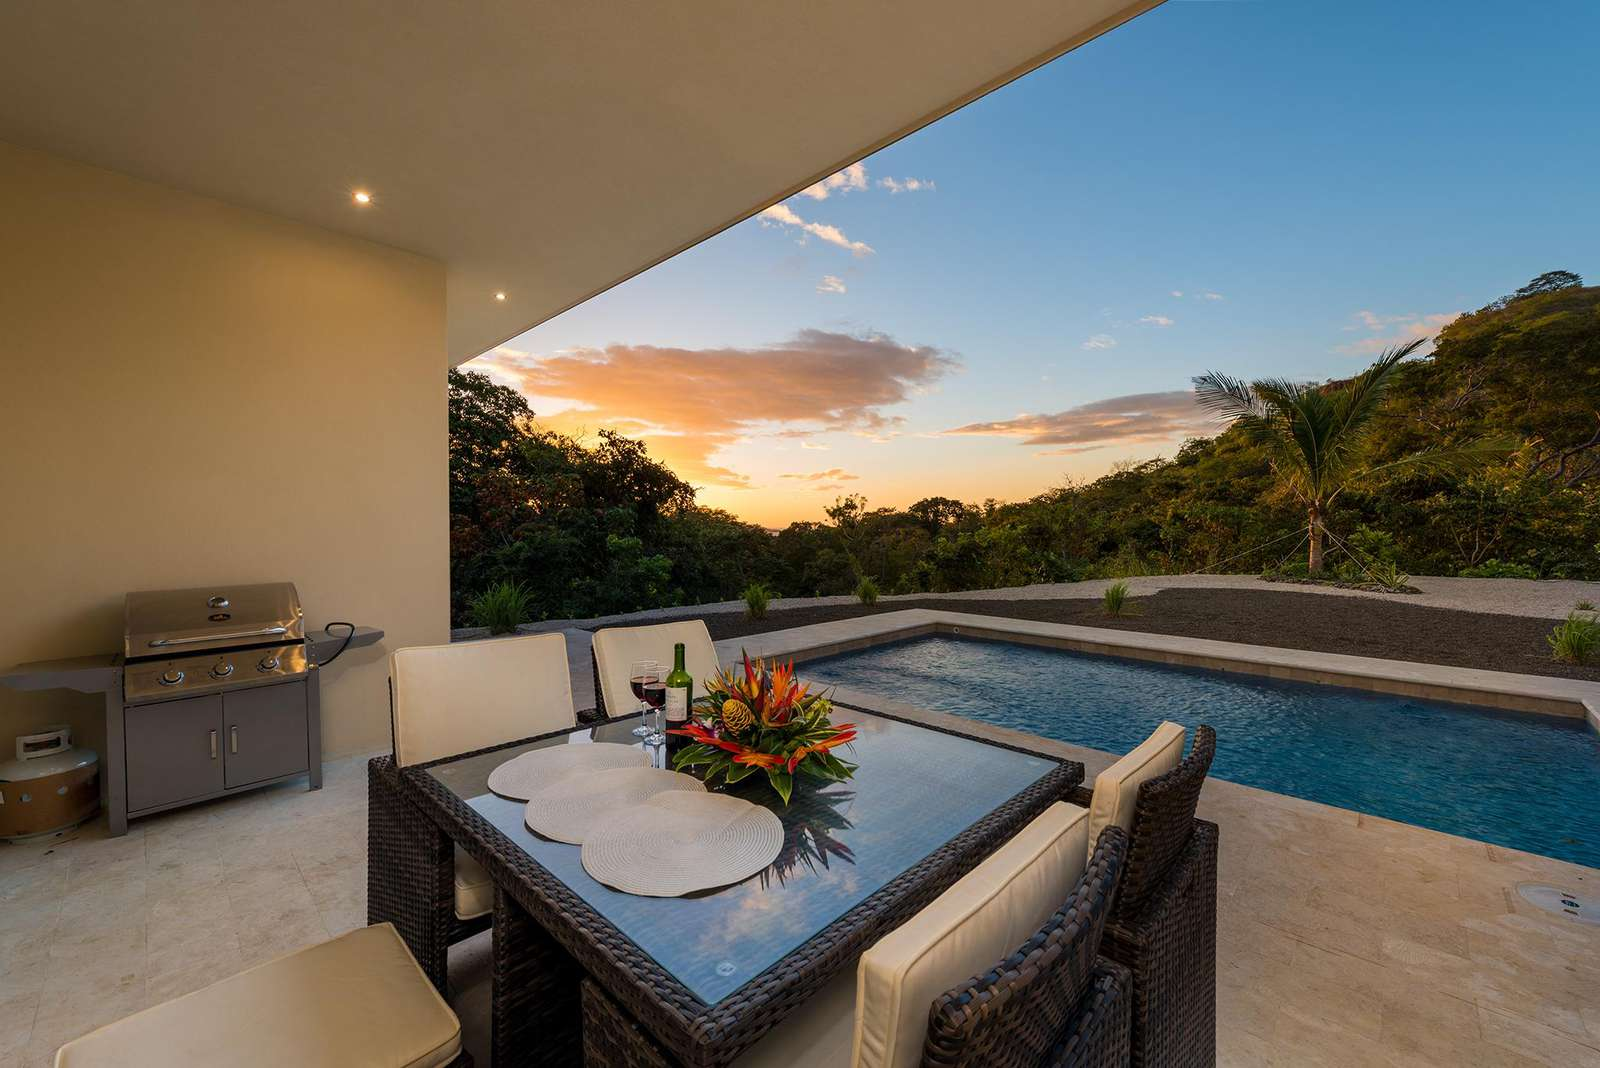 Dos rios 18, pool and sunset view